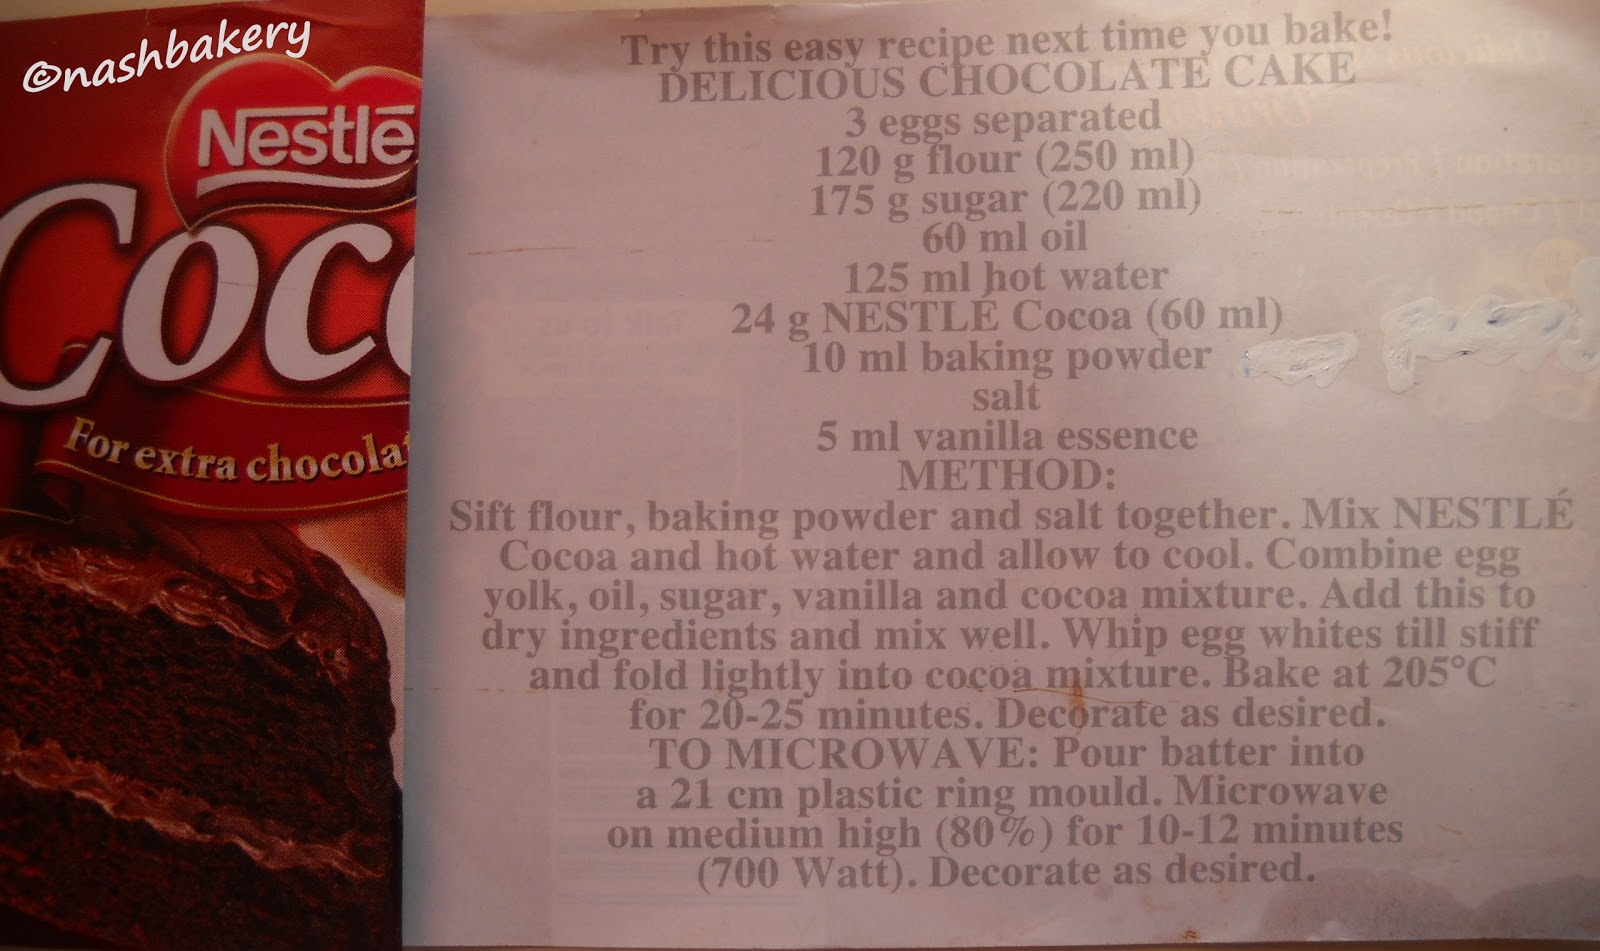 Nestle Vanilla Cake Recipe